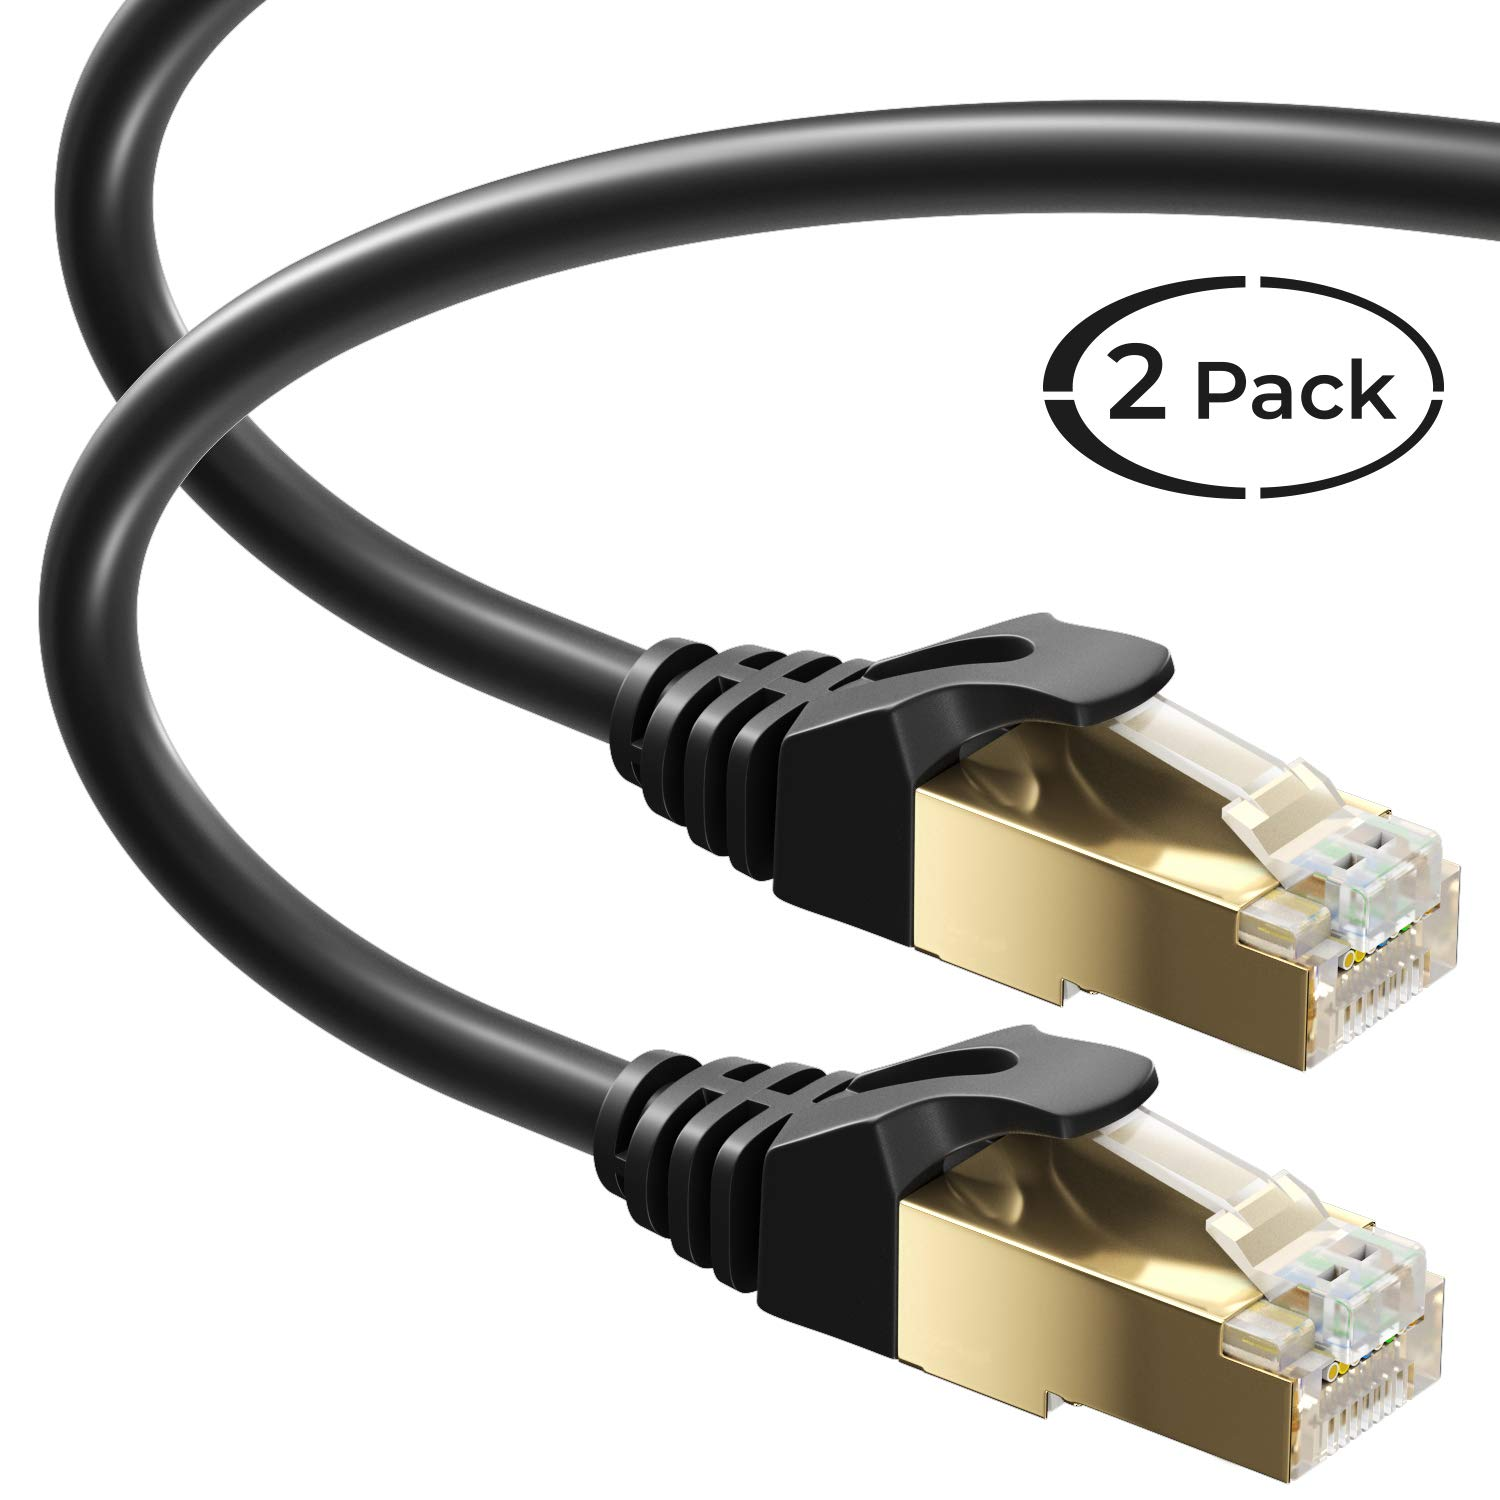 ACL 25 Feet RJ45 Ultra Premium 32AWG Cat6 550 MHZ Flat Ethernet Cable 2 Pack Black